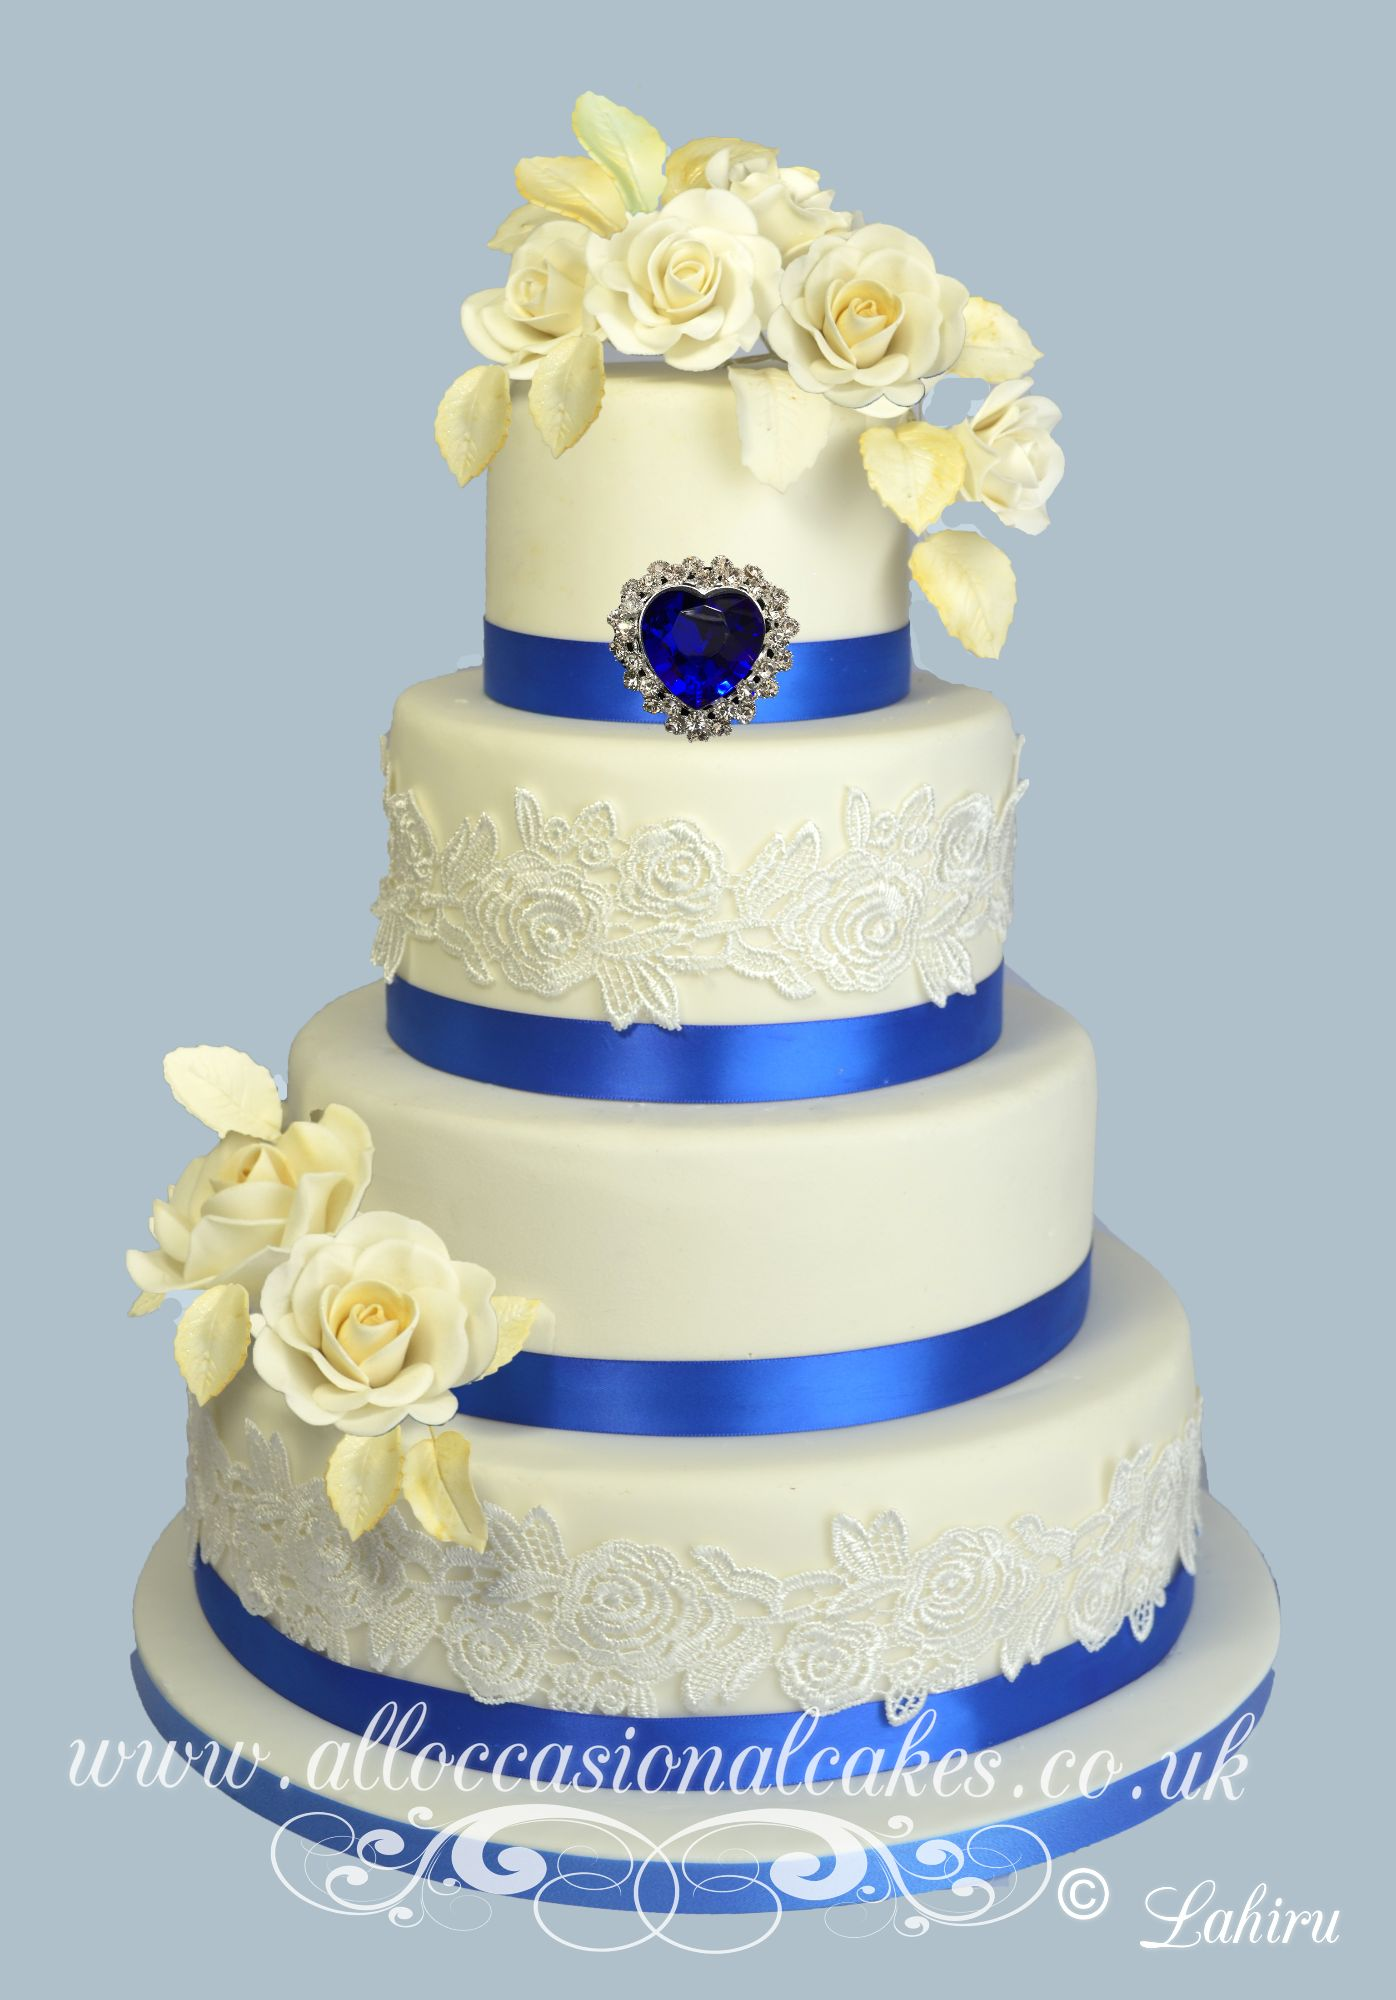 Royal blue brooch wedding cake